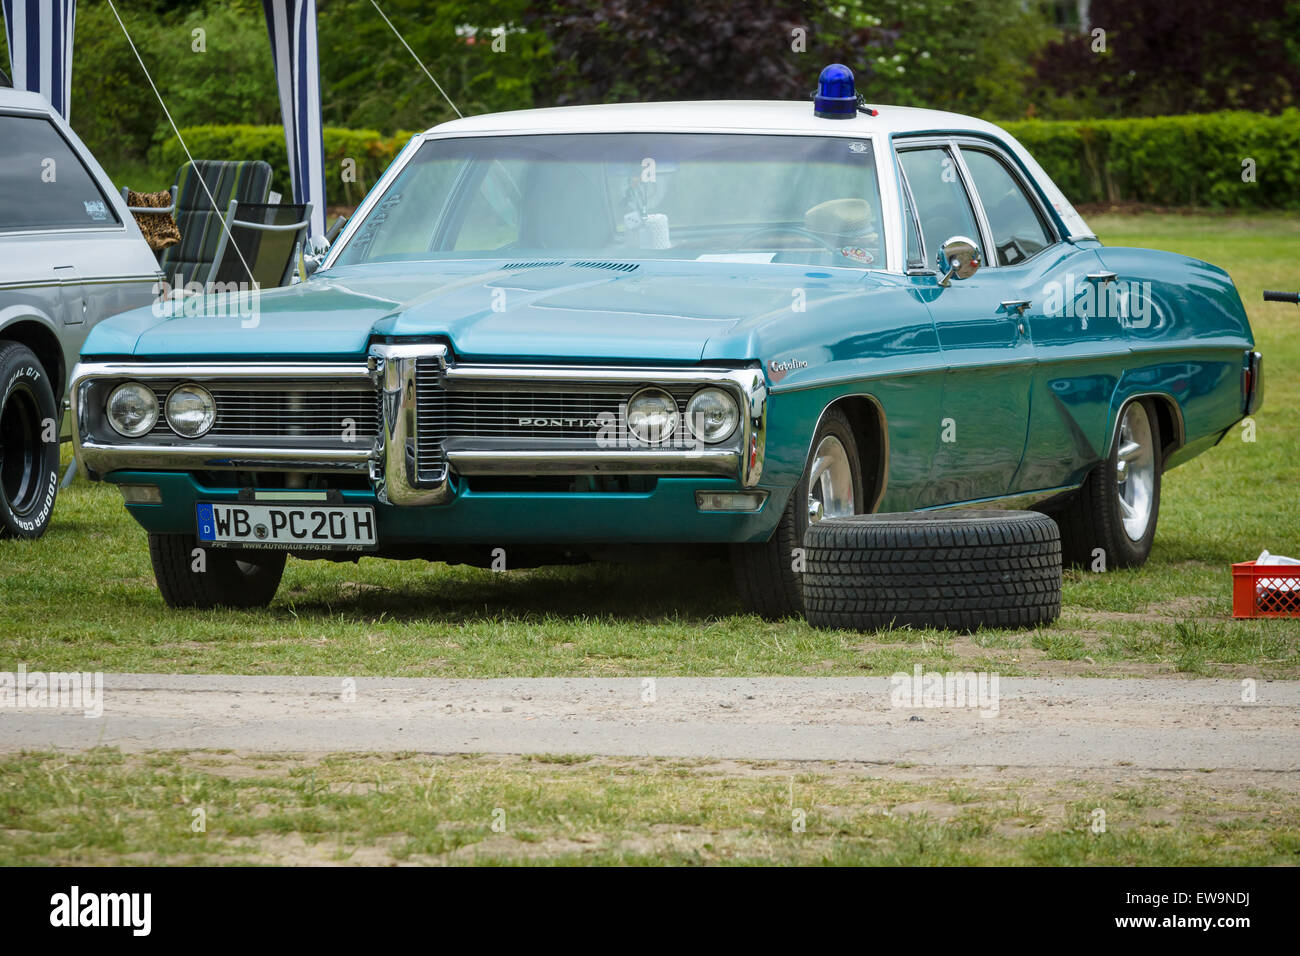 paaren im glien germany may 23 2015 full size car pontiac stock photo royalty free image. Black Bedroom Furniture Sets. Home Design Ideas